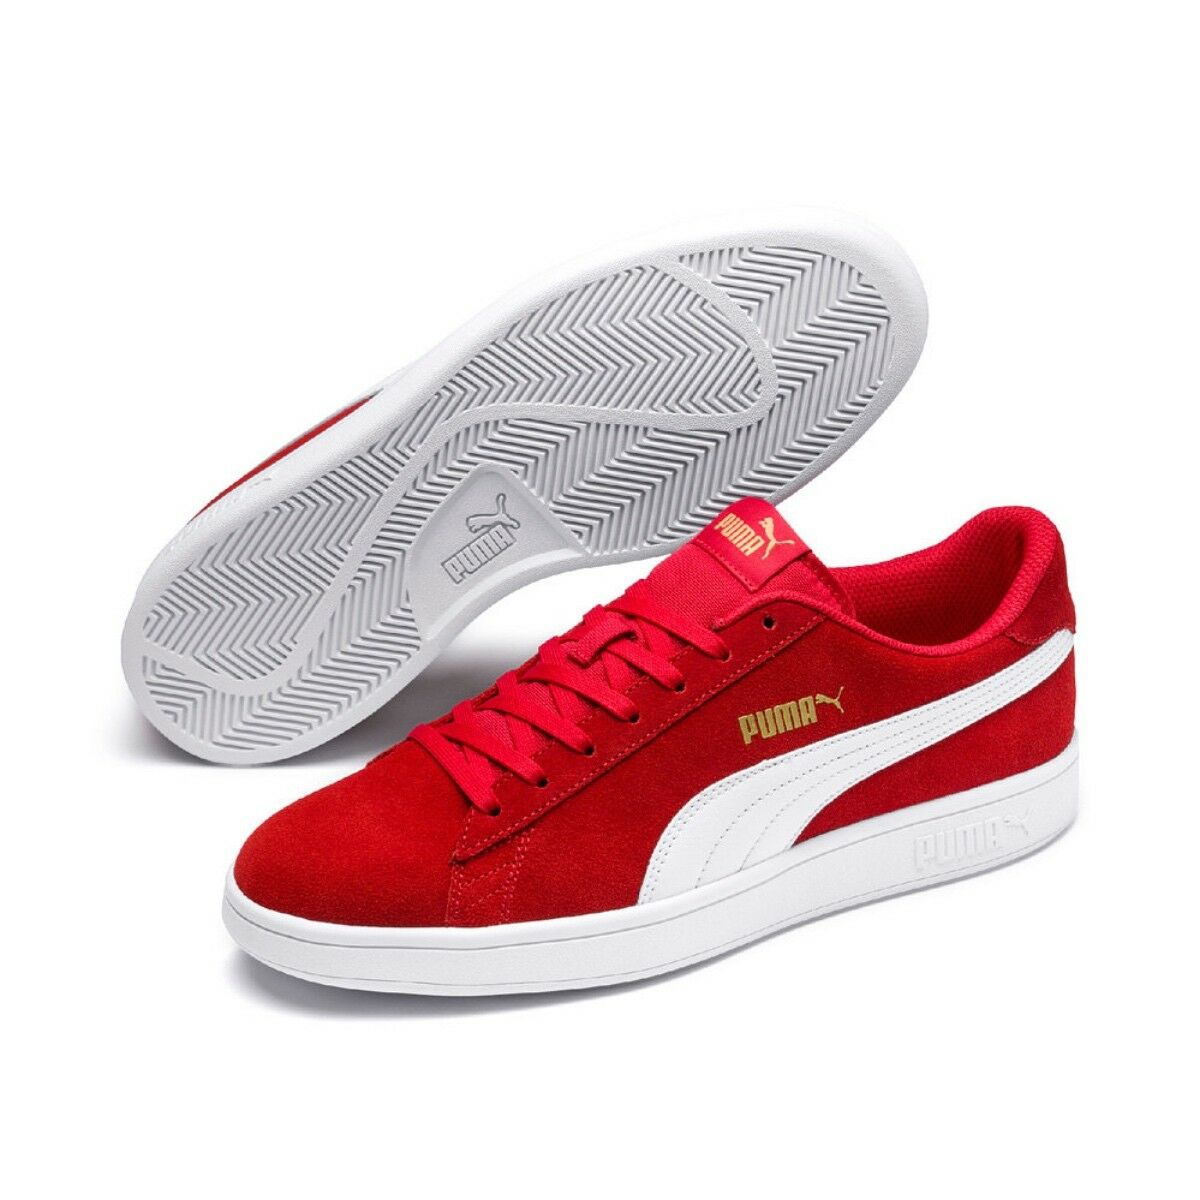 Puma Smash v2 Unisex Erwachsenen Sneaker Turnschuhe Retro 364989 High Risk Red